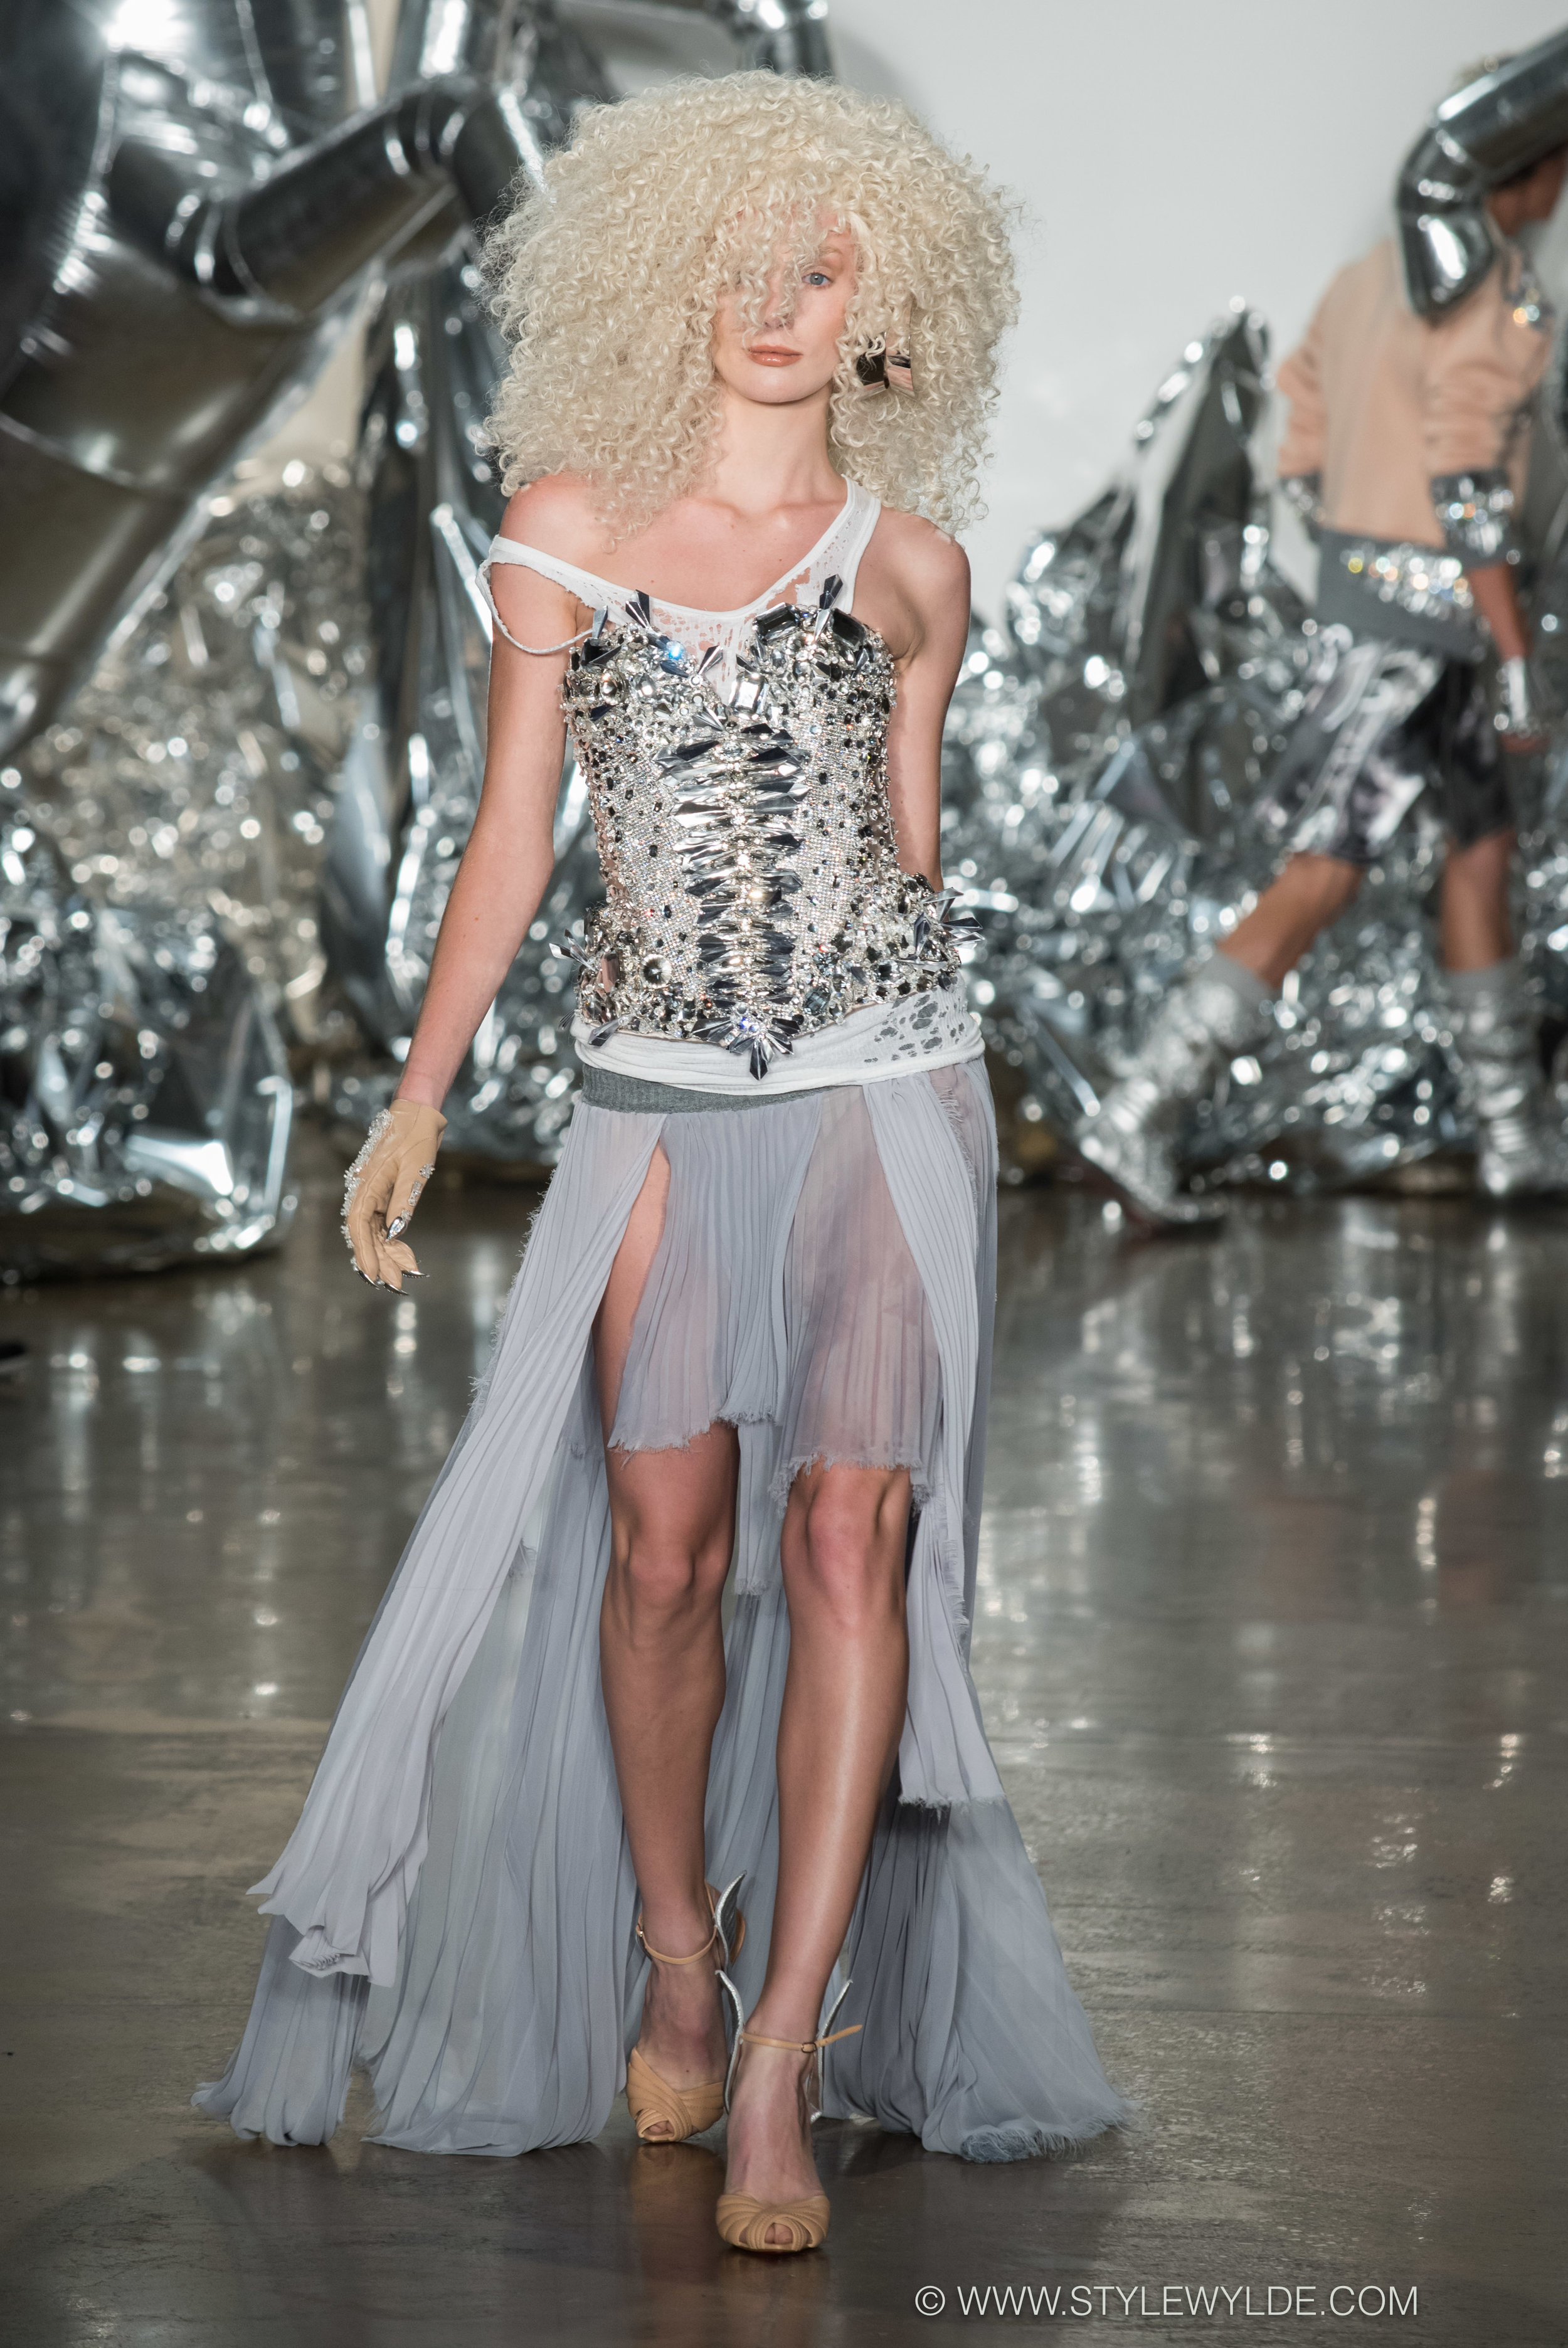 stylewylde-The Blonds SS17-FOH- Edits-20.jpg